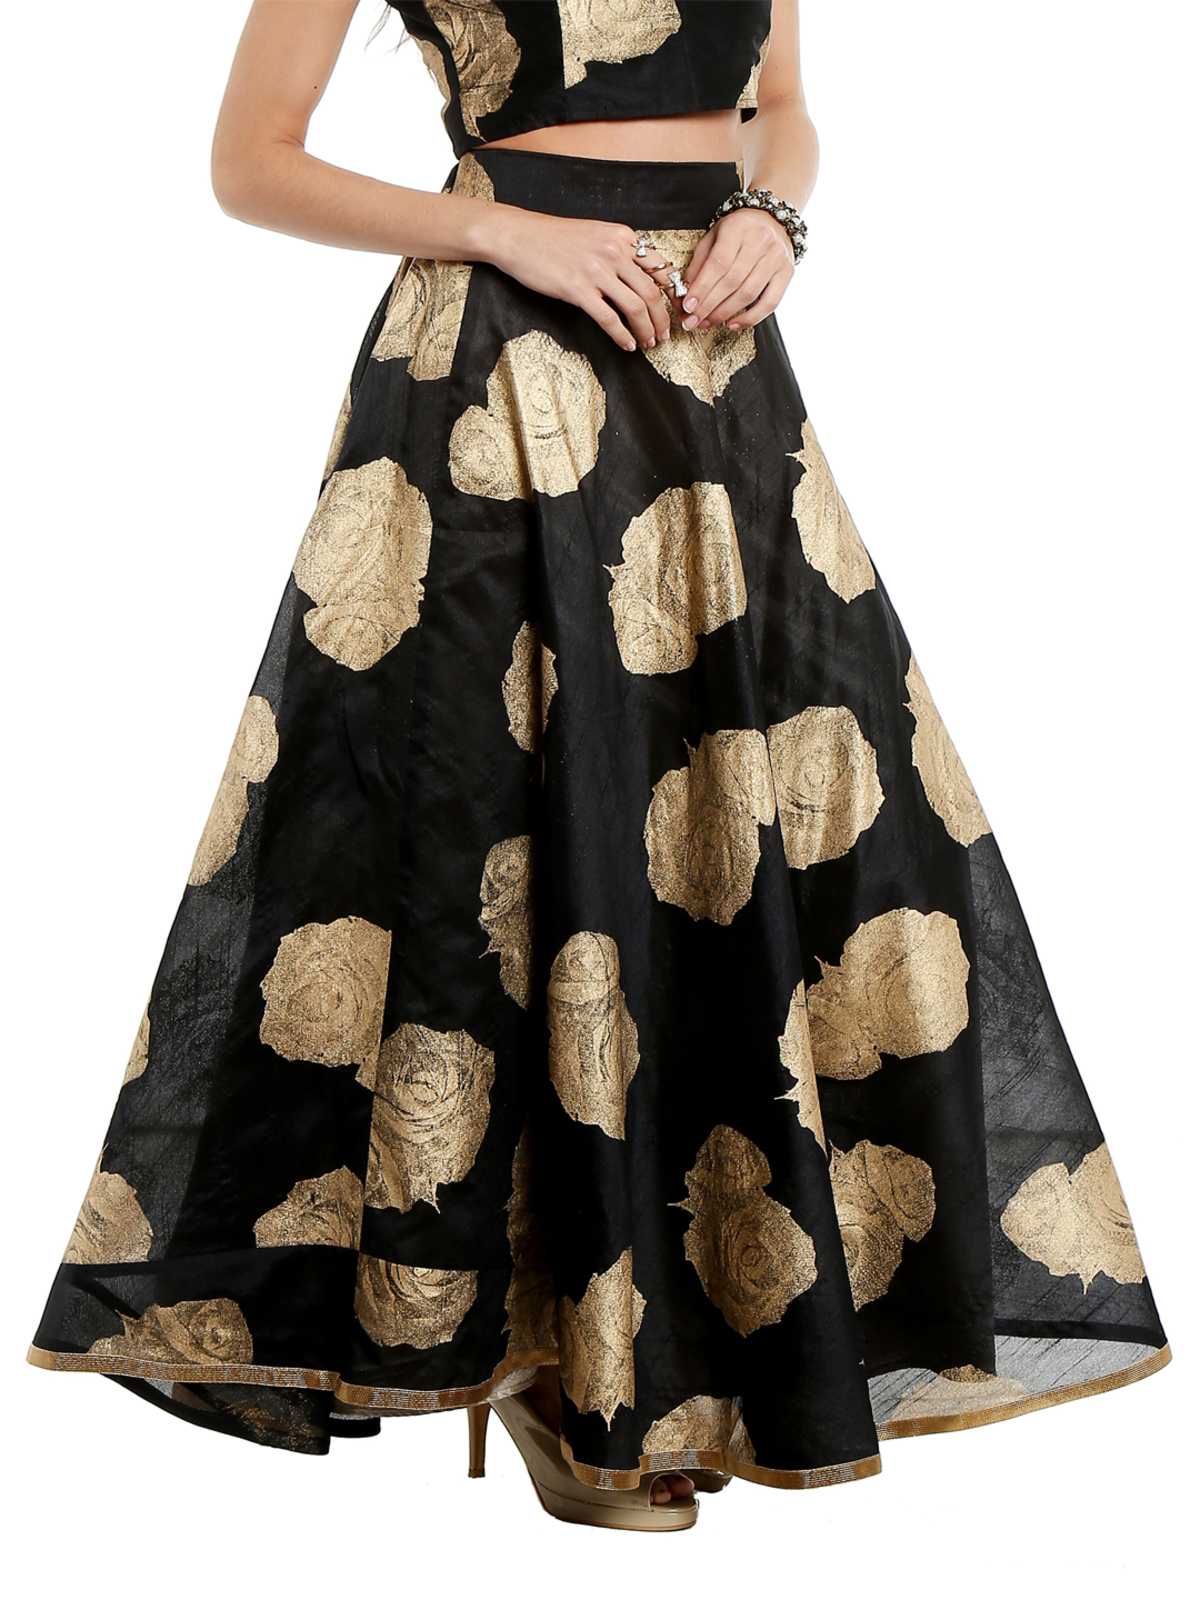 Ira Soleil black skirt printed with gold tinsel print